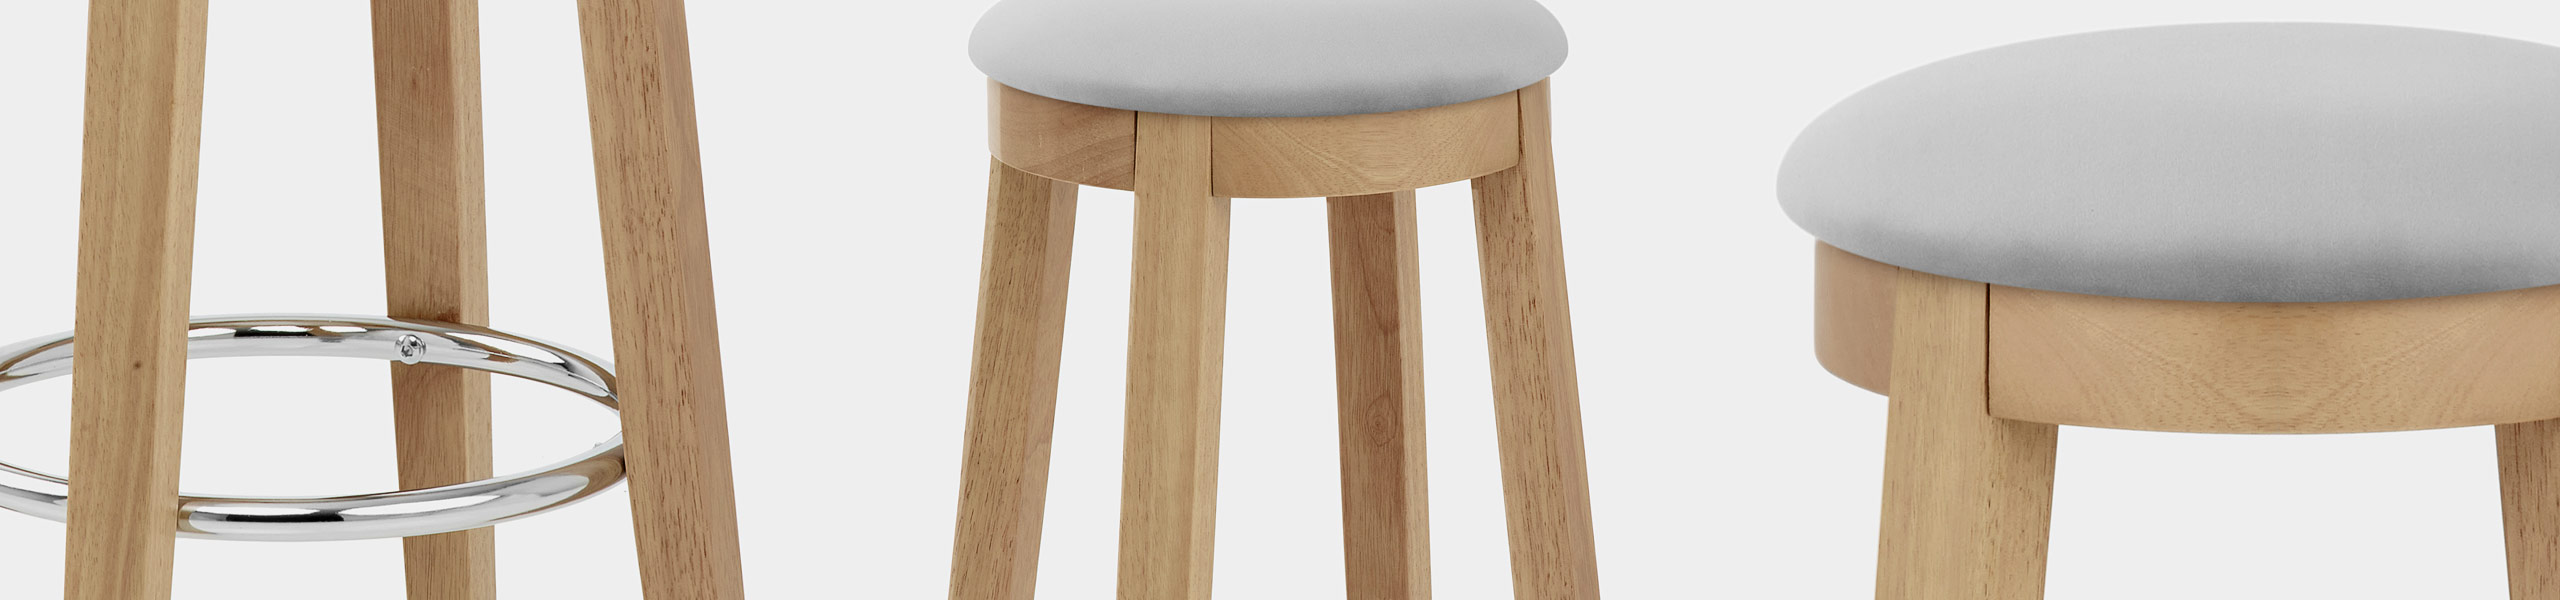 Ikon Kitchen Stool Oak & Grey Velvet Video Banner